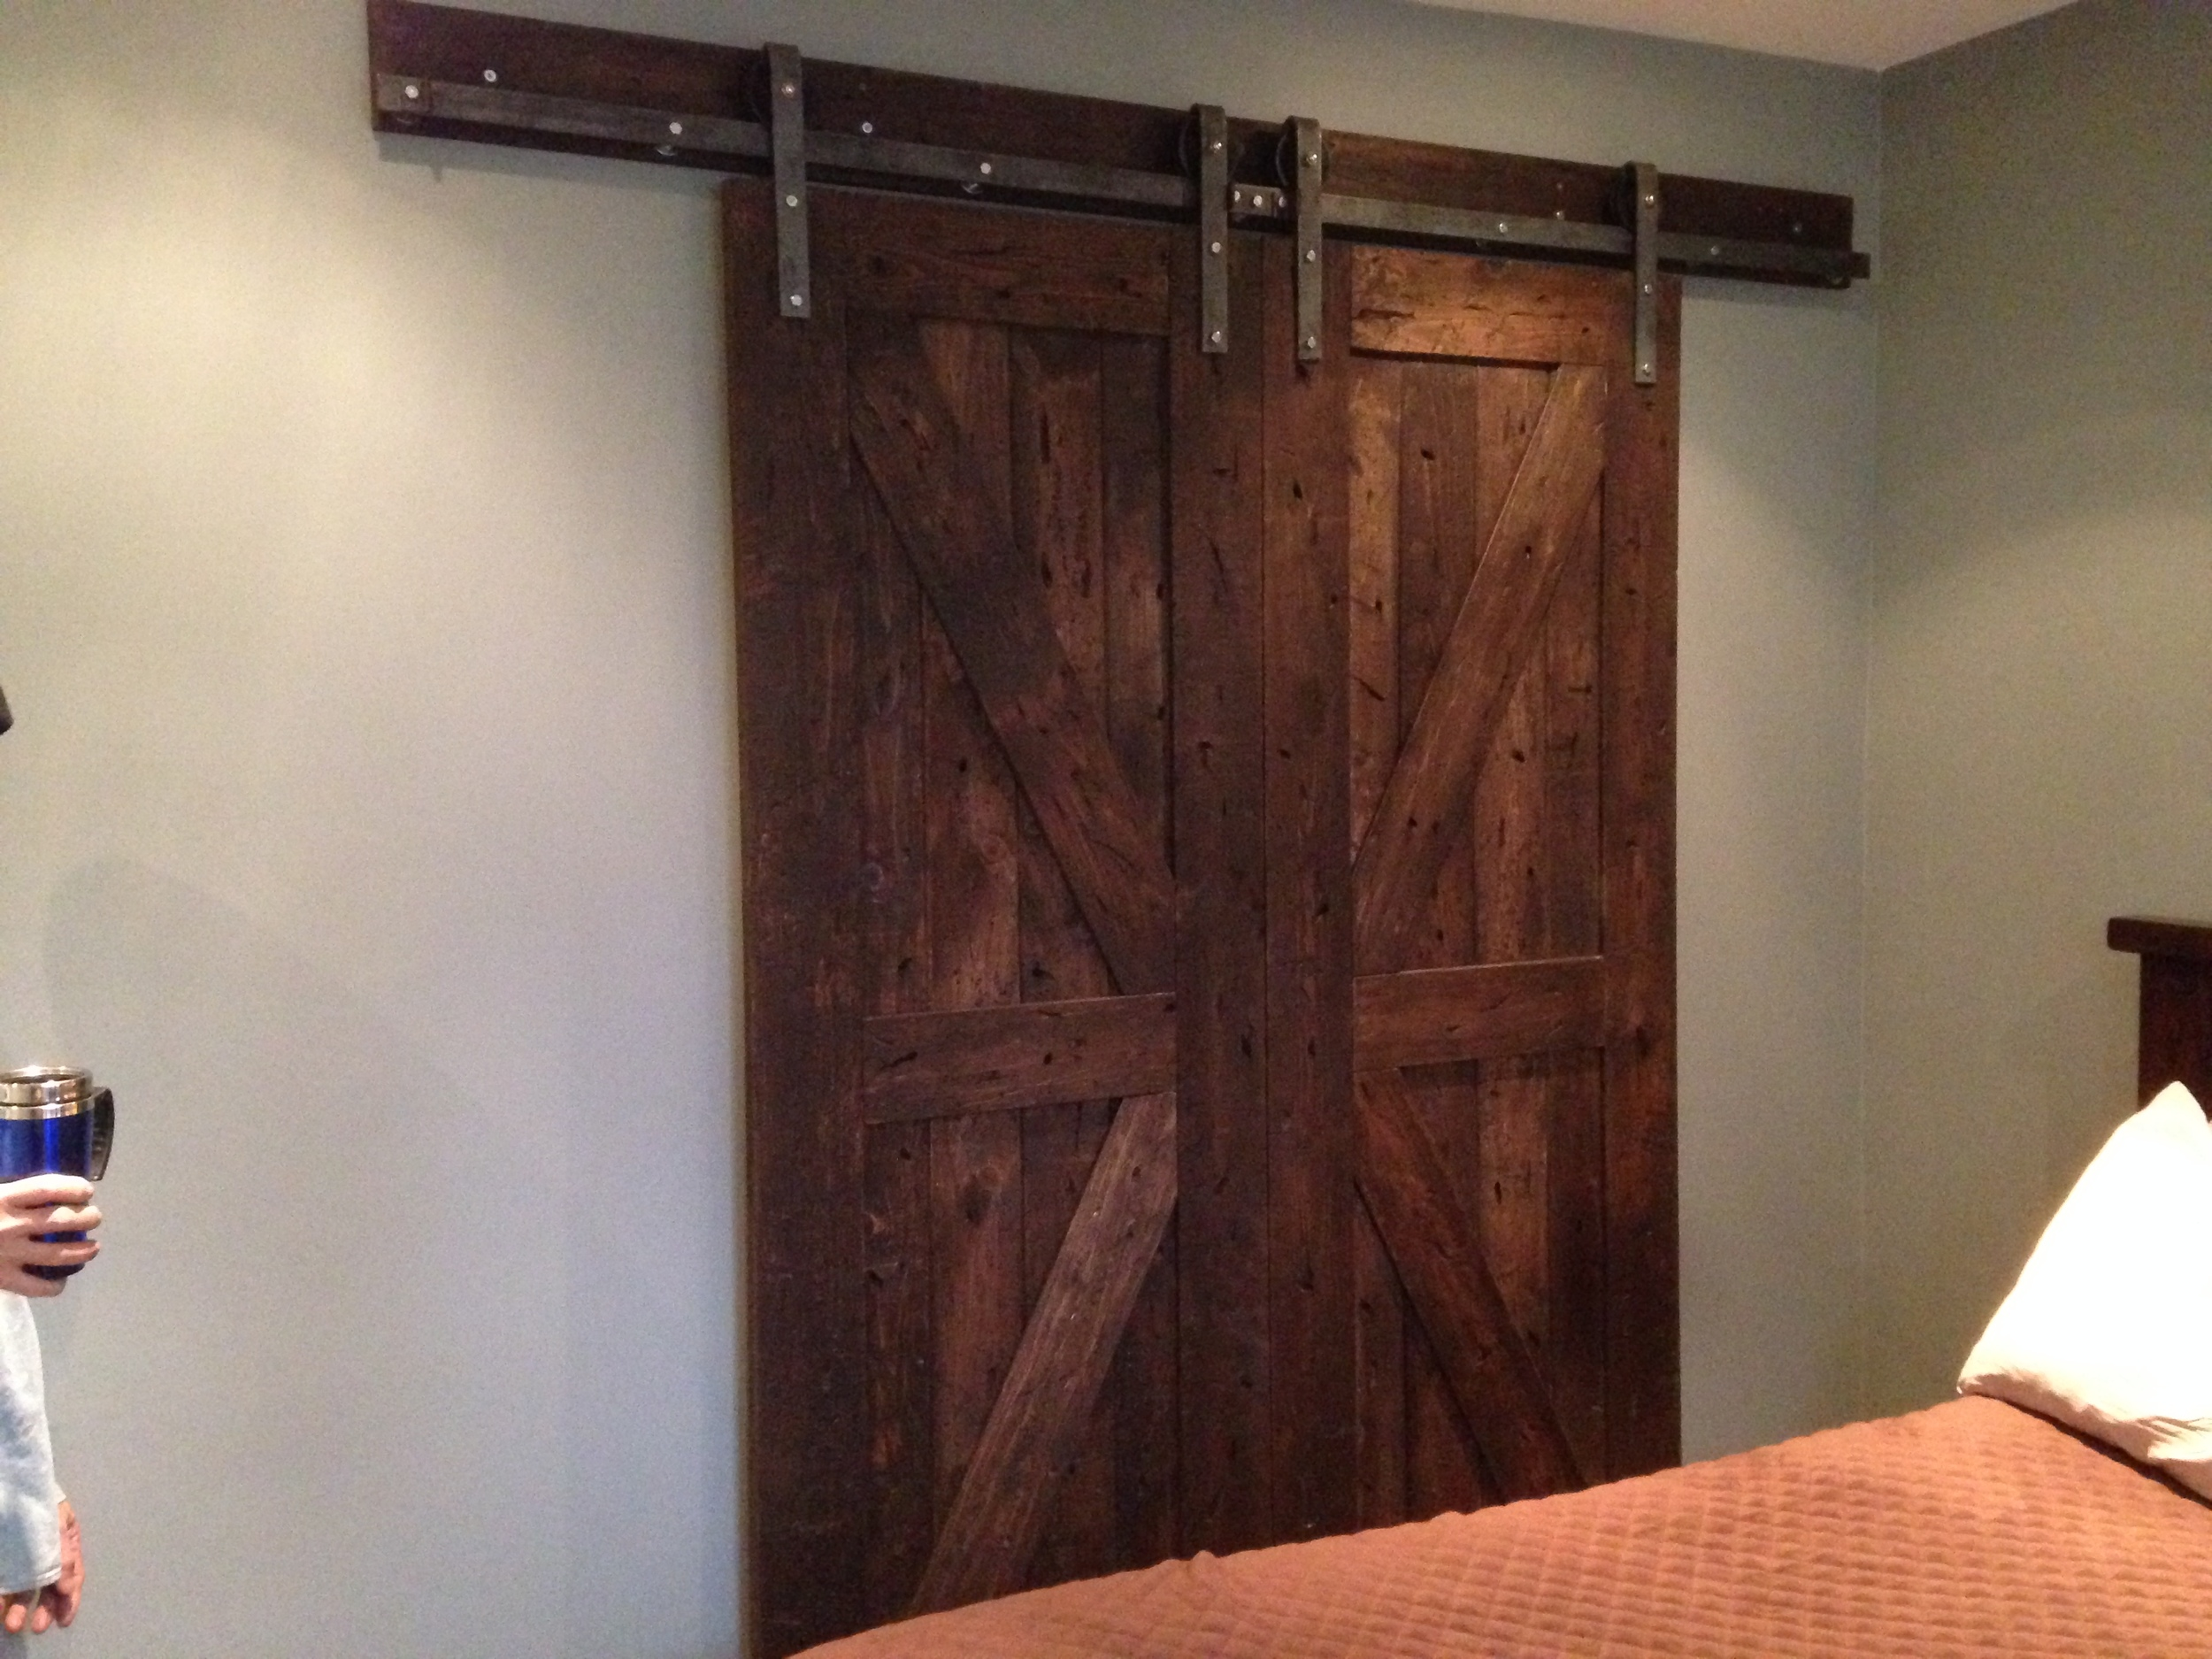 These are not just any barn doors, they become the Union Jack Flag when closed, and that's what makes them so cool